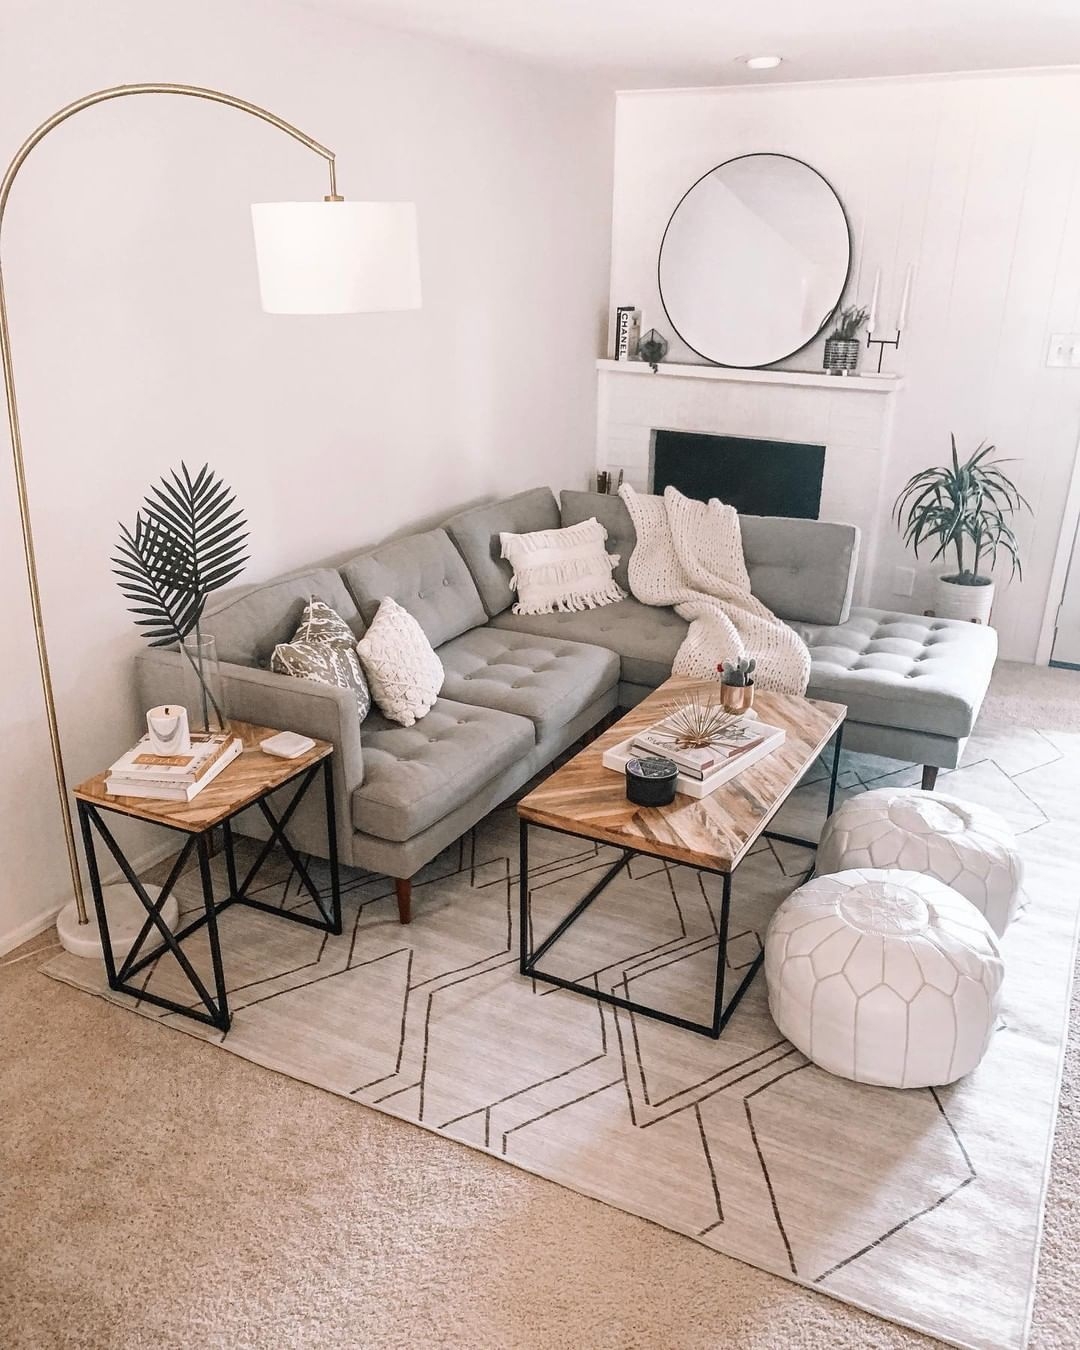 """#LTKhome on Instagram: """"Neutral chic living room inspo care of @nickievu 